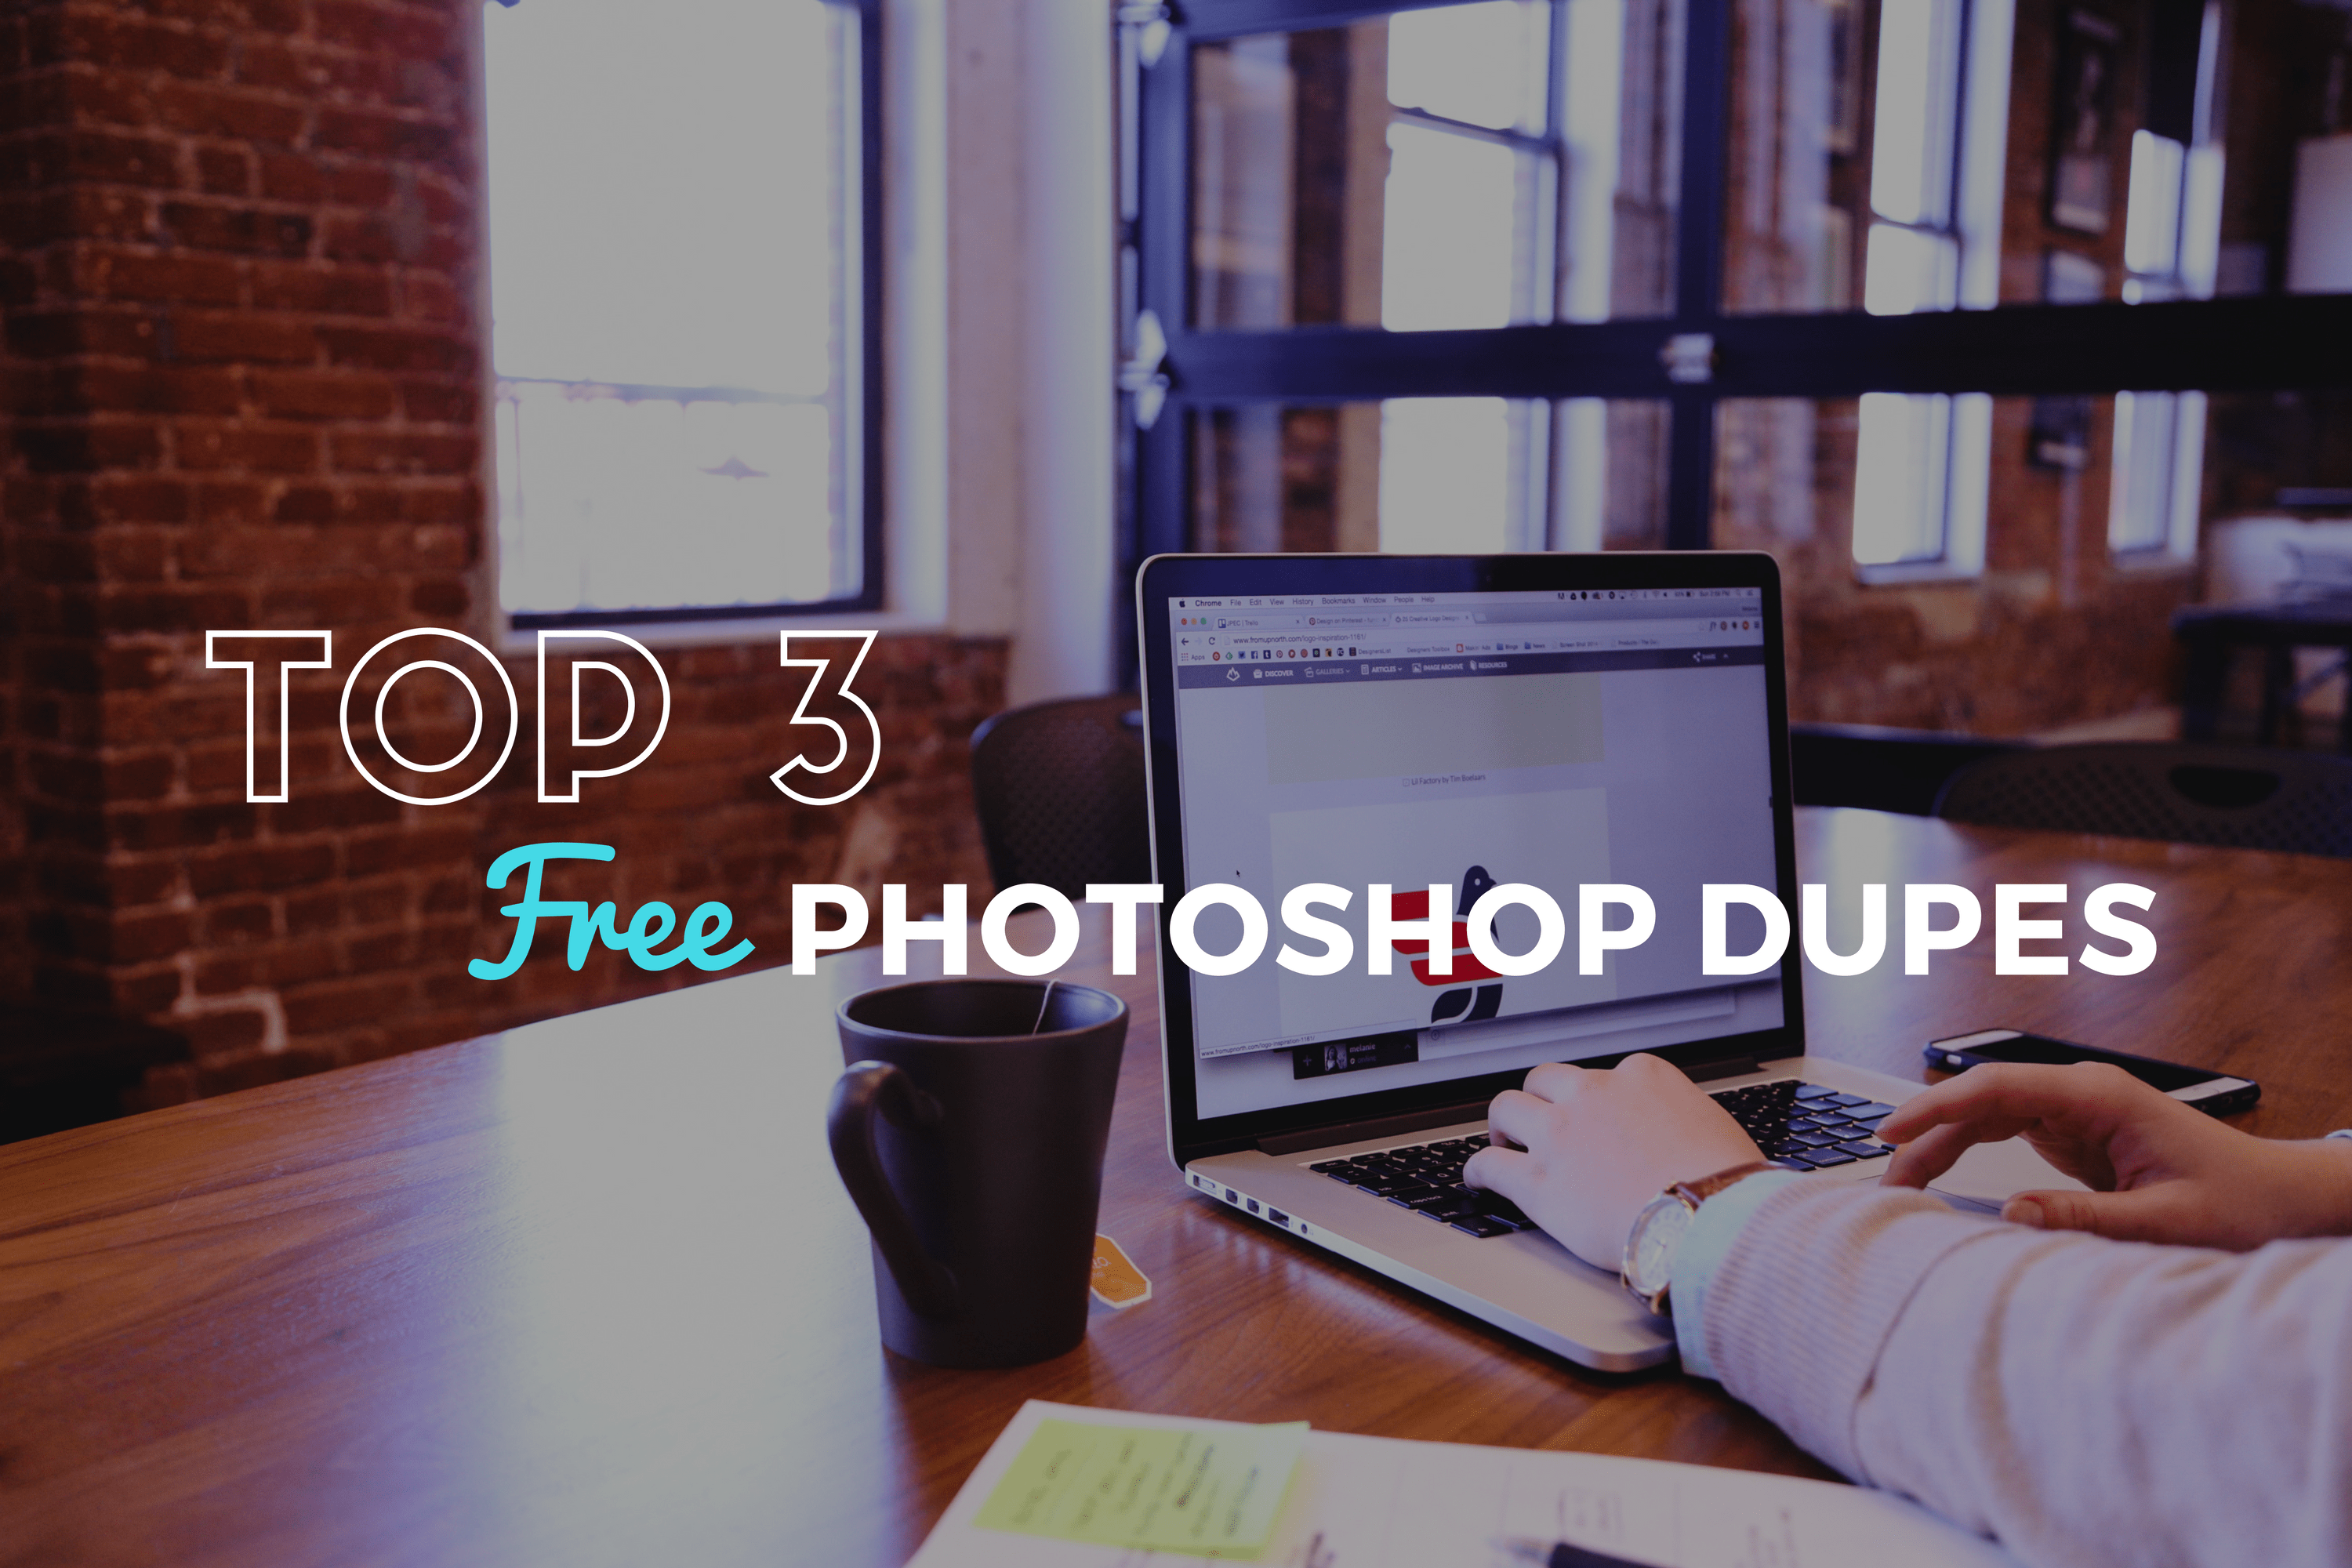 Top 3 Free Photoshop Dupes